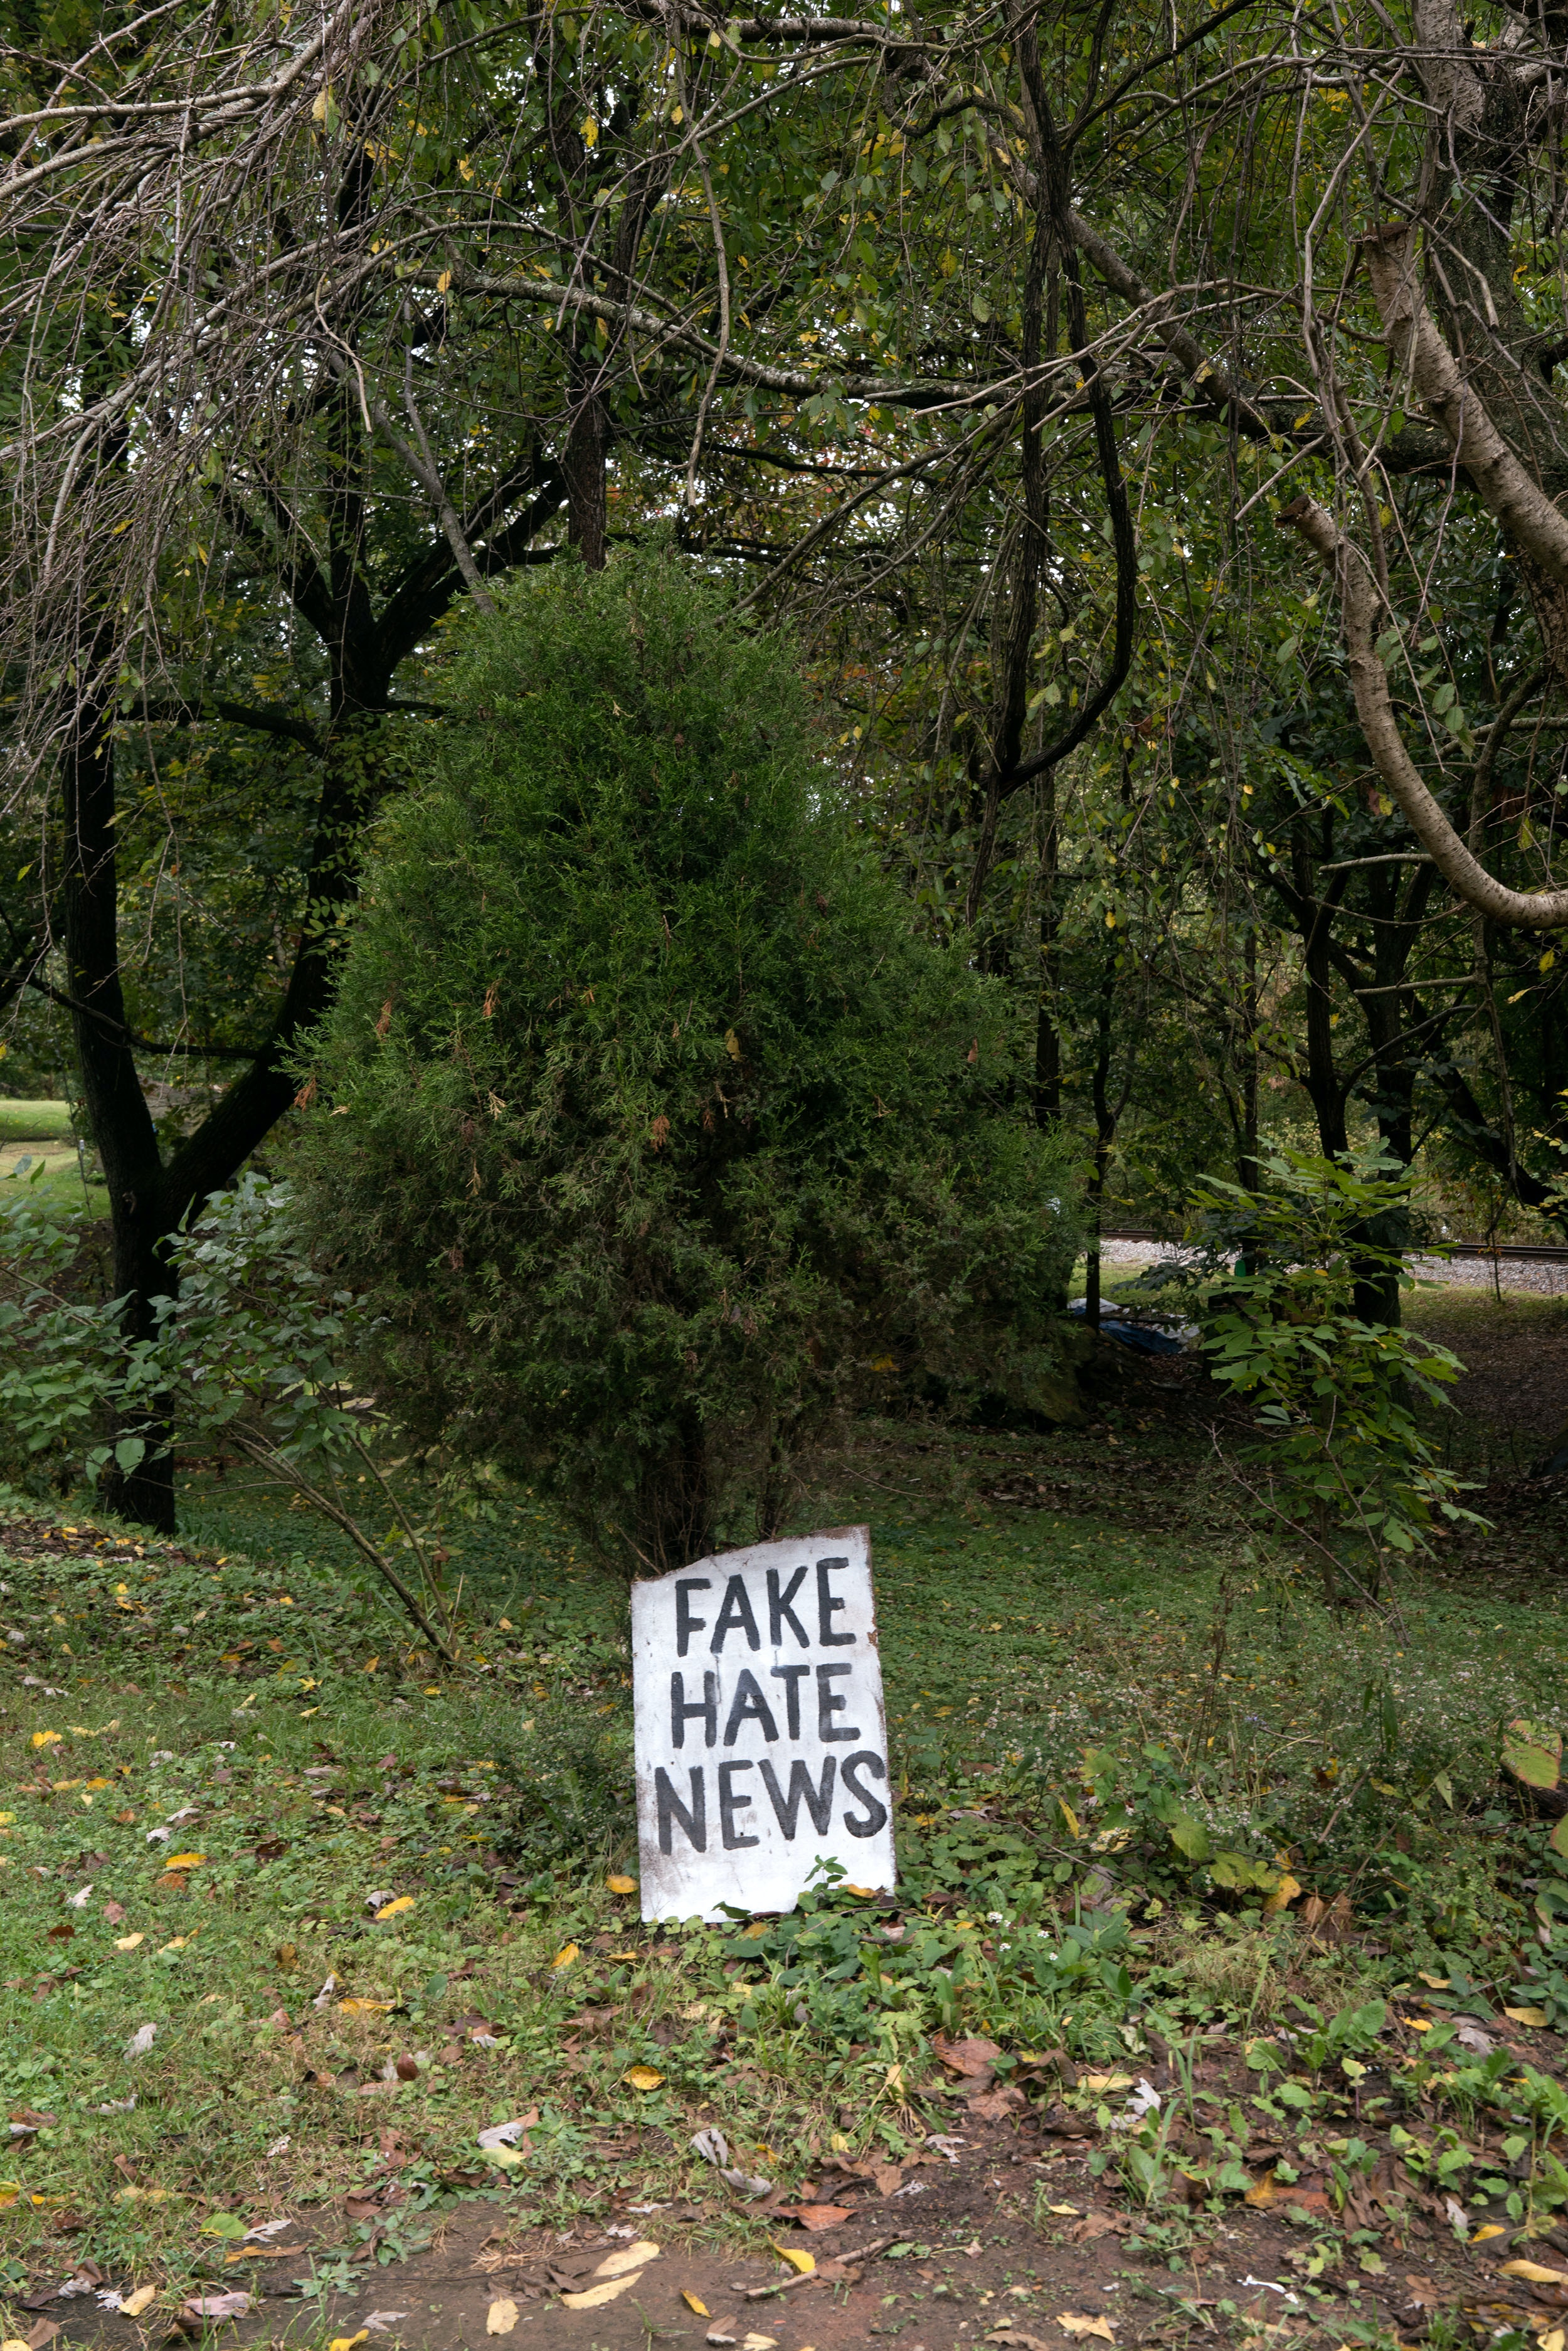 A yard sign in Meigs county, Ohio addresses the controversy of fake news.